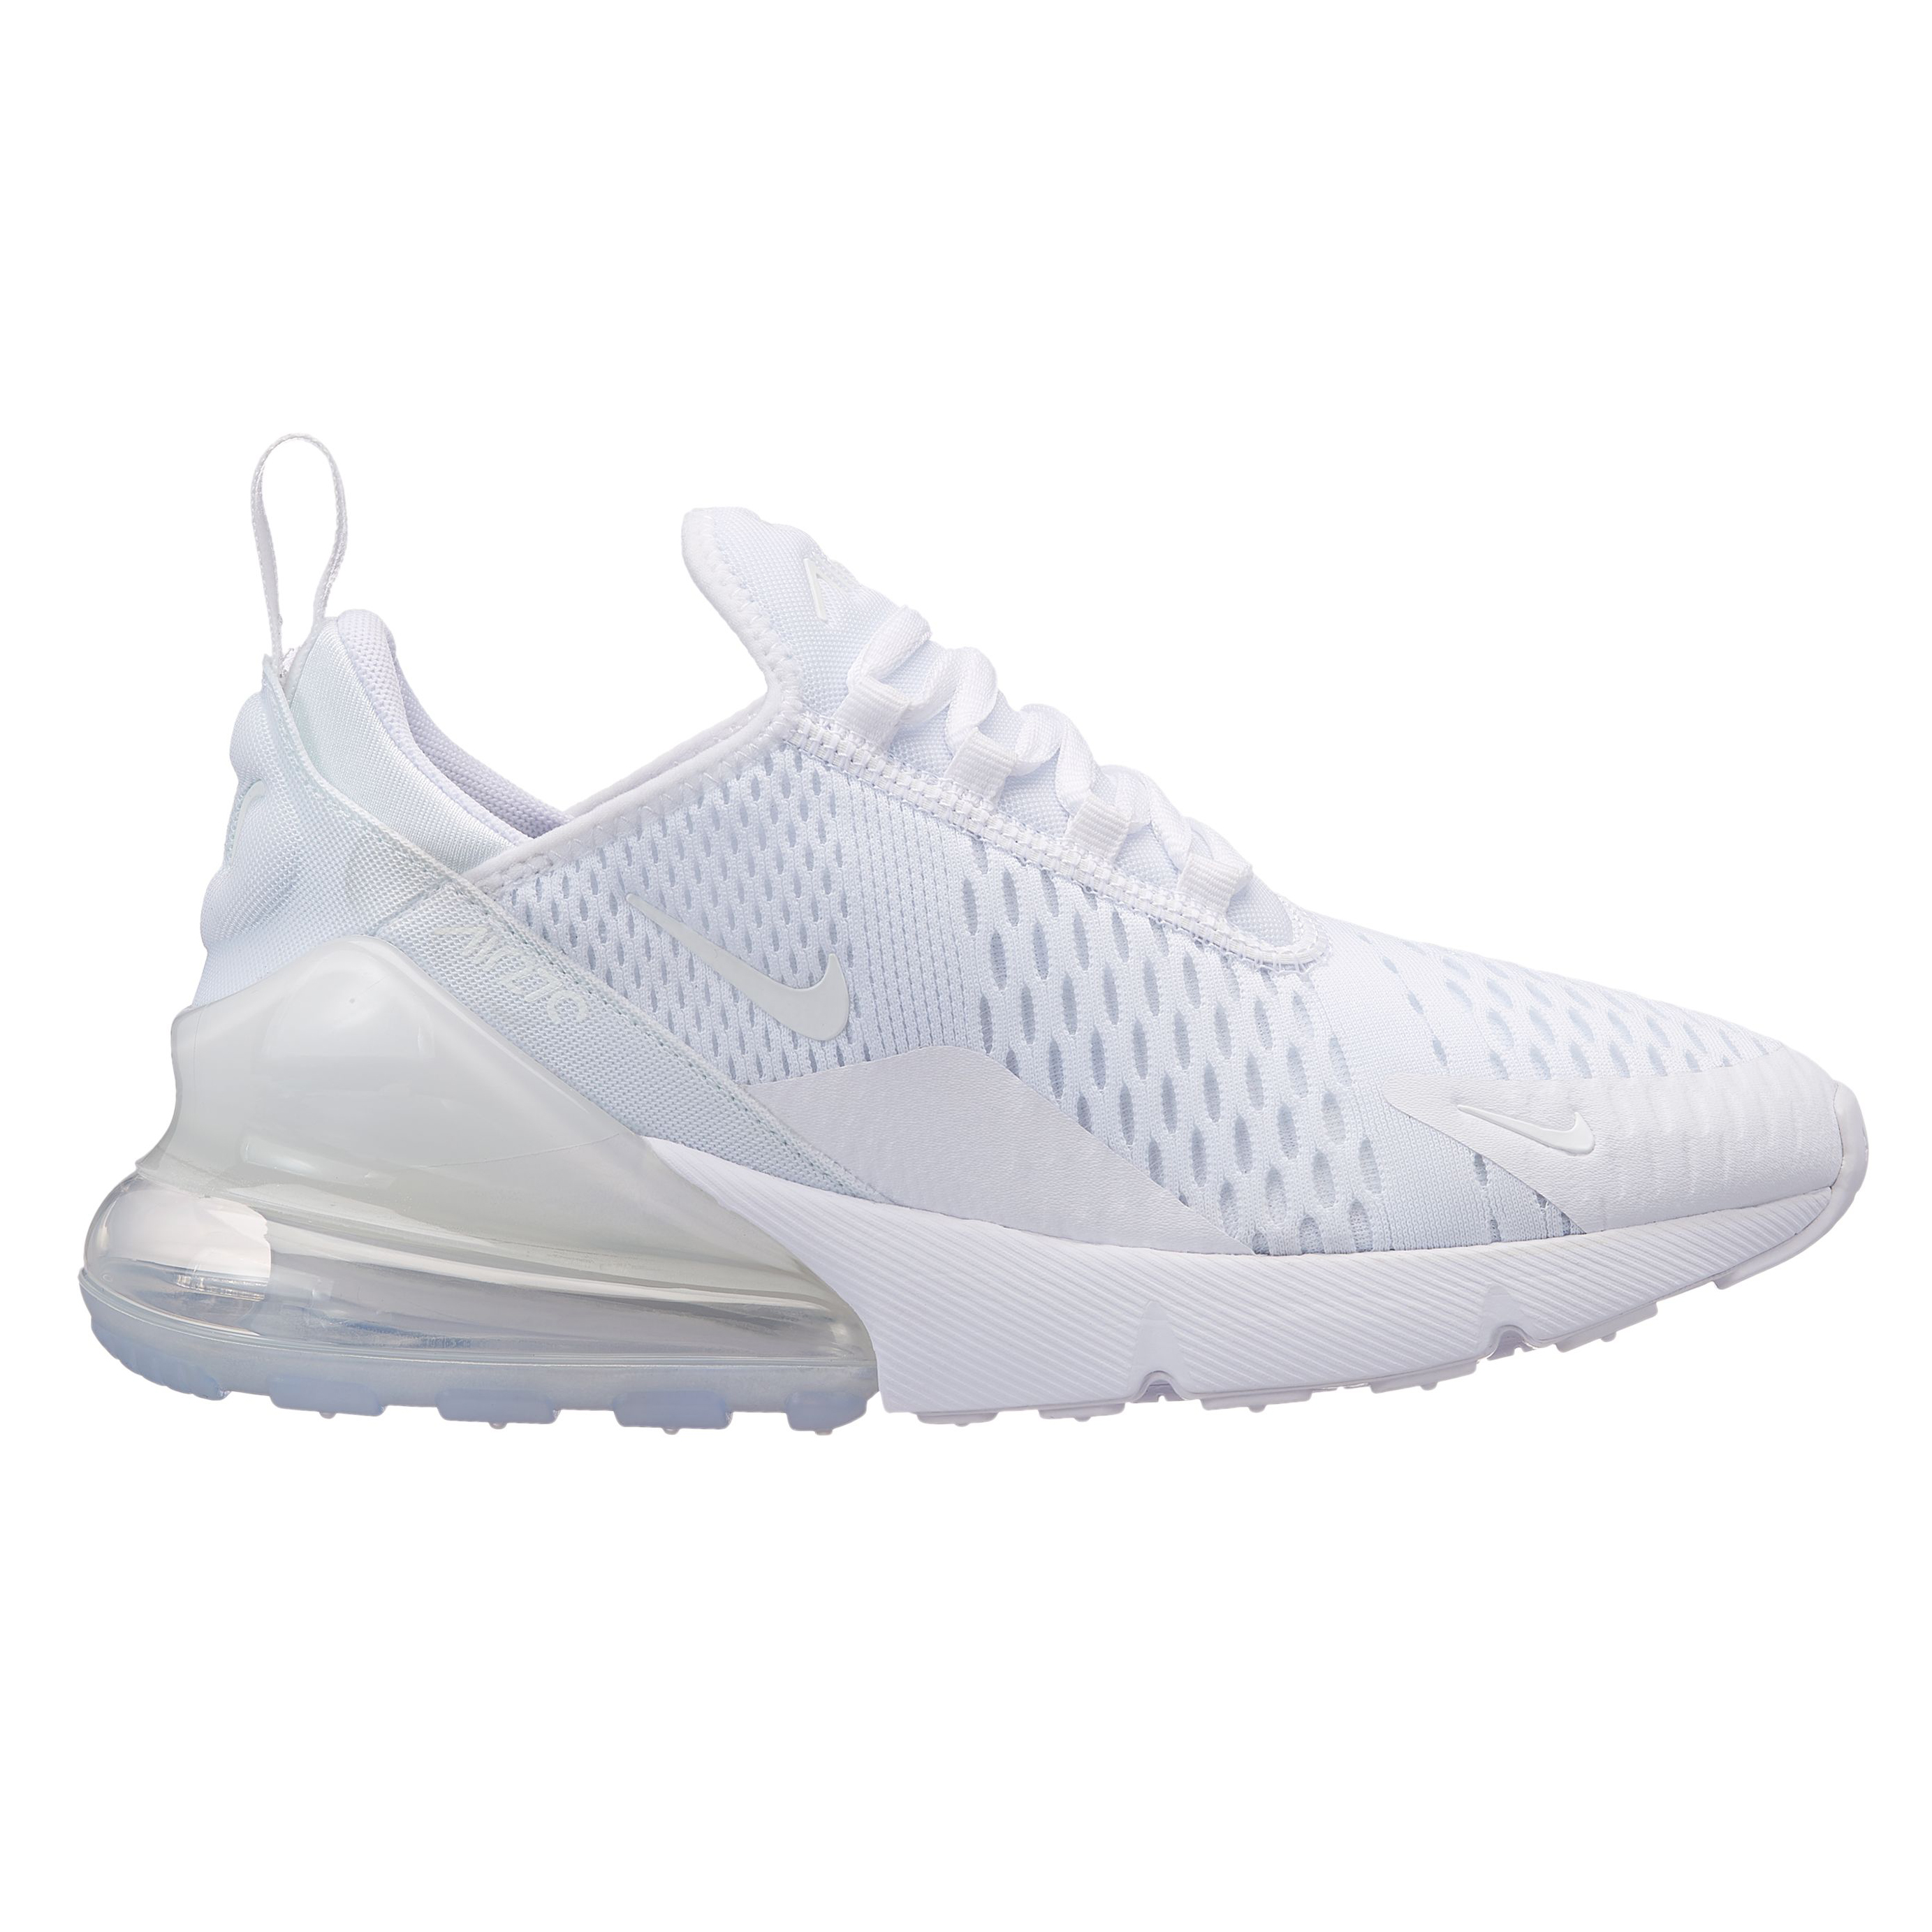 reputable site 83714 9af60 Ladies, the Nike Air Max 270 'Triple White' Arrives Month ...